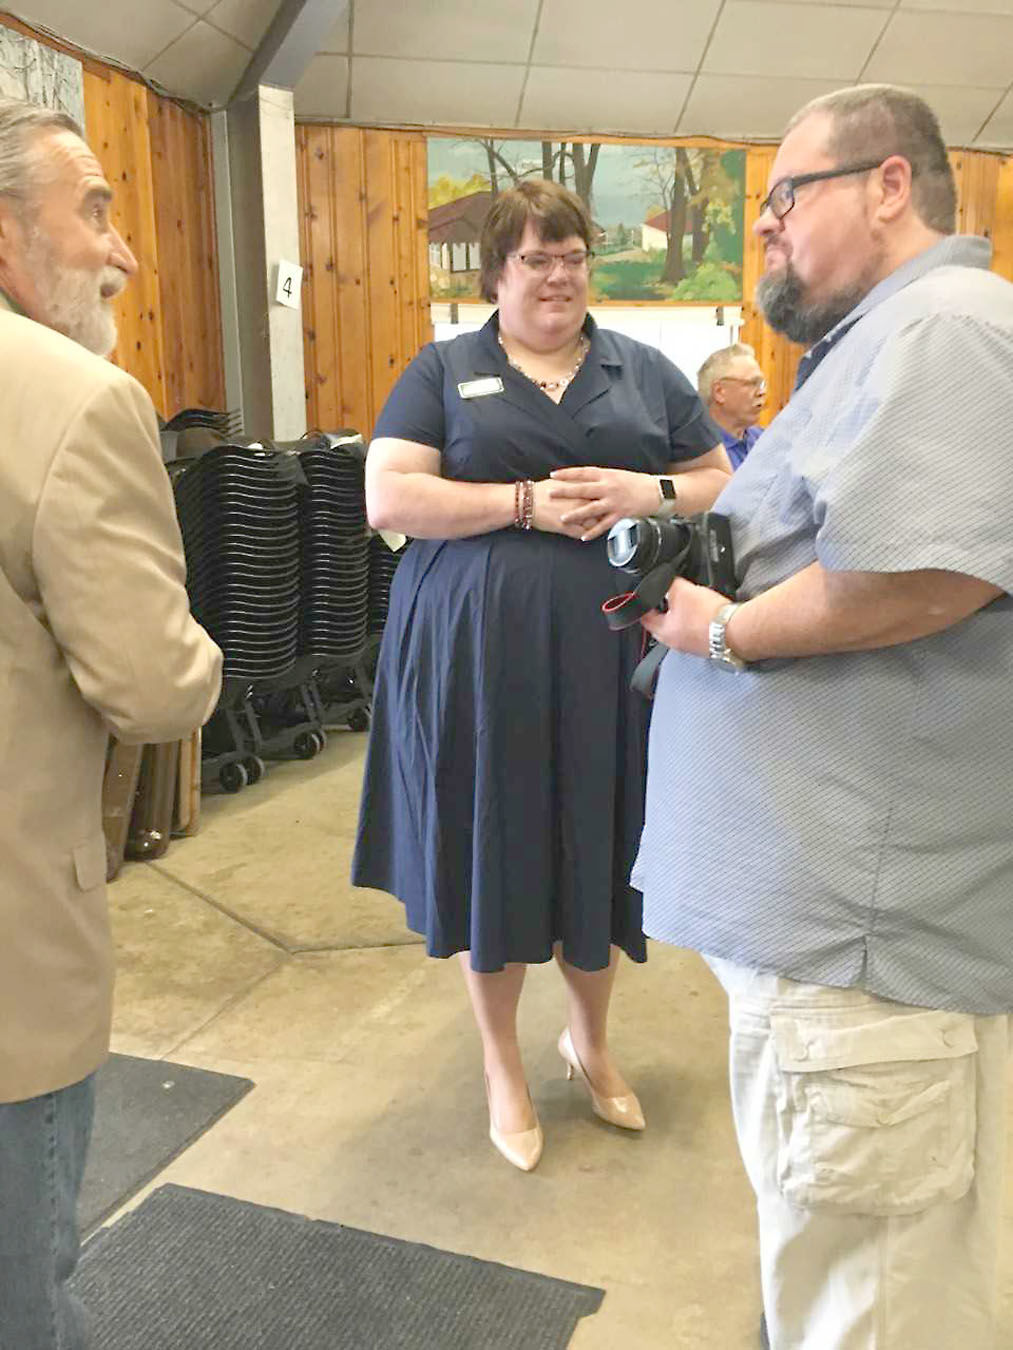 Jumonville welcomes Heather Withrow